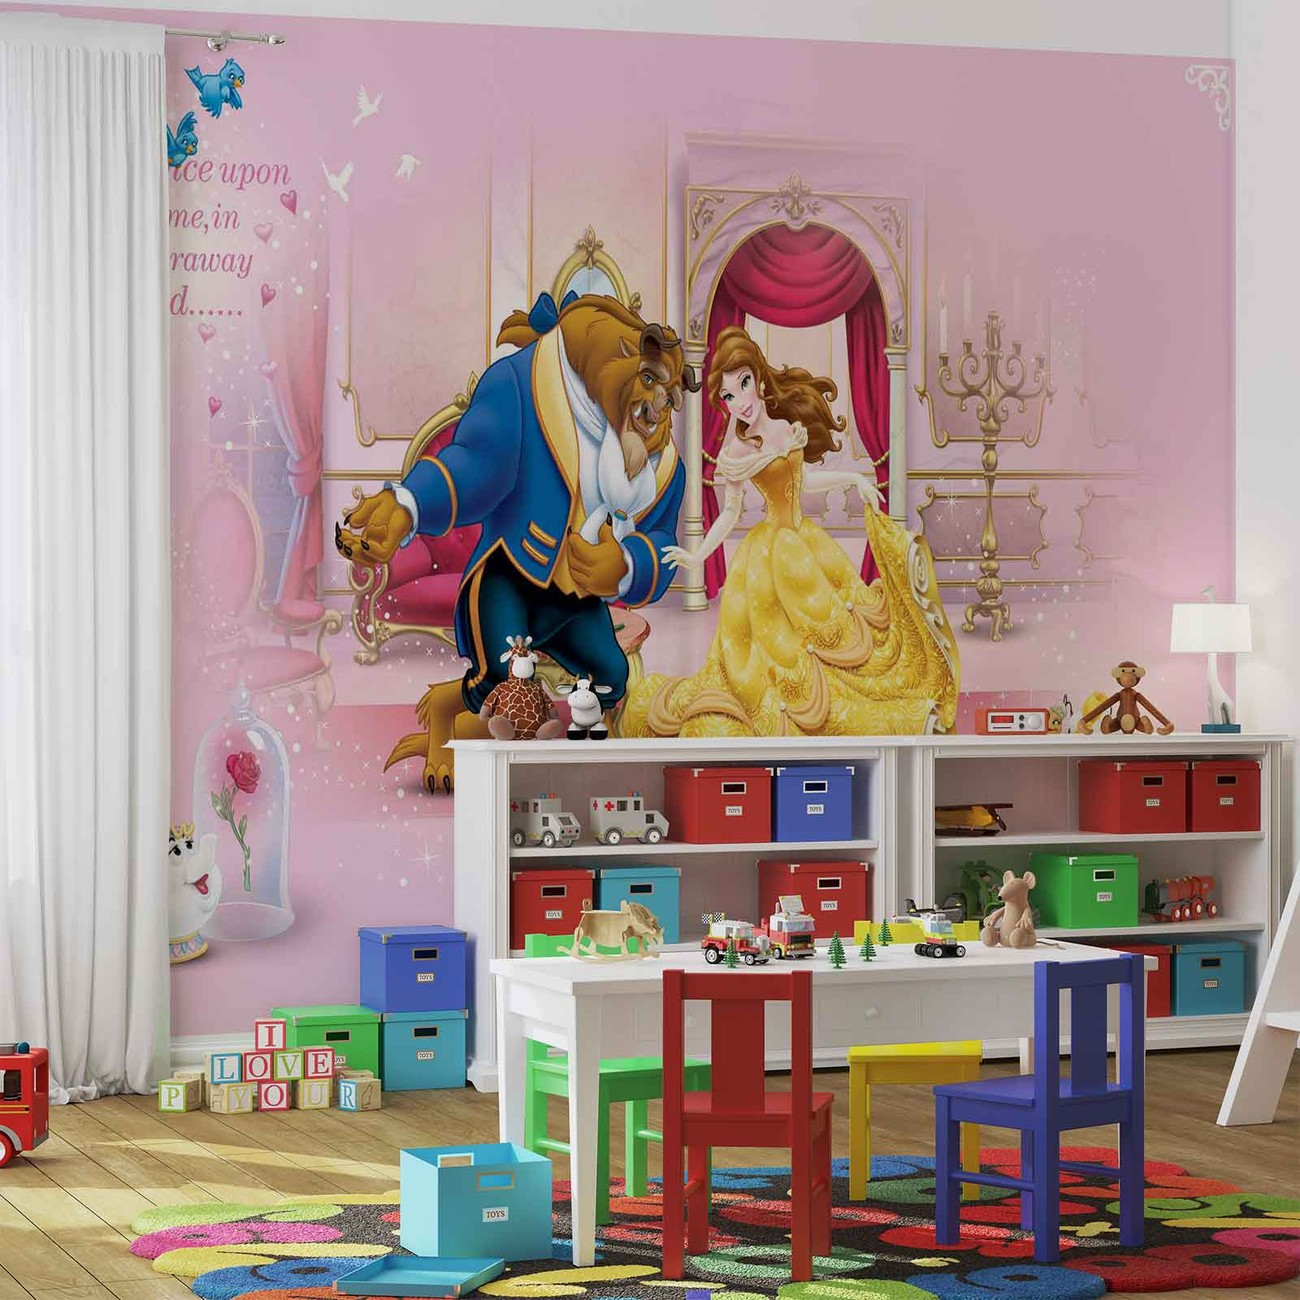 Disney princesses beauty beast wall paper mural buy at for Disney princess mural asda